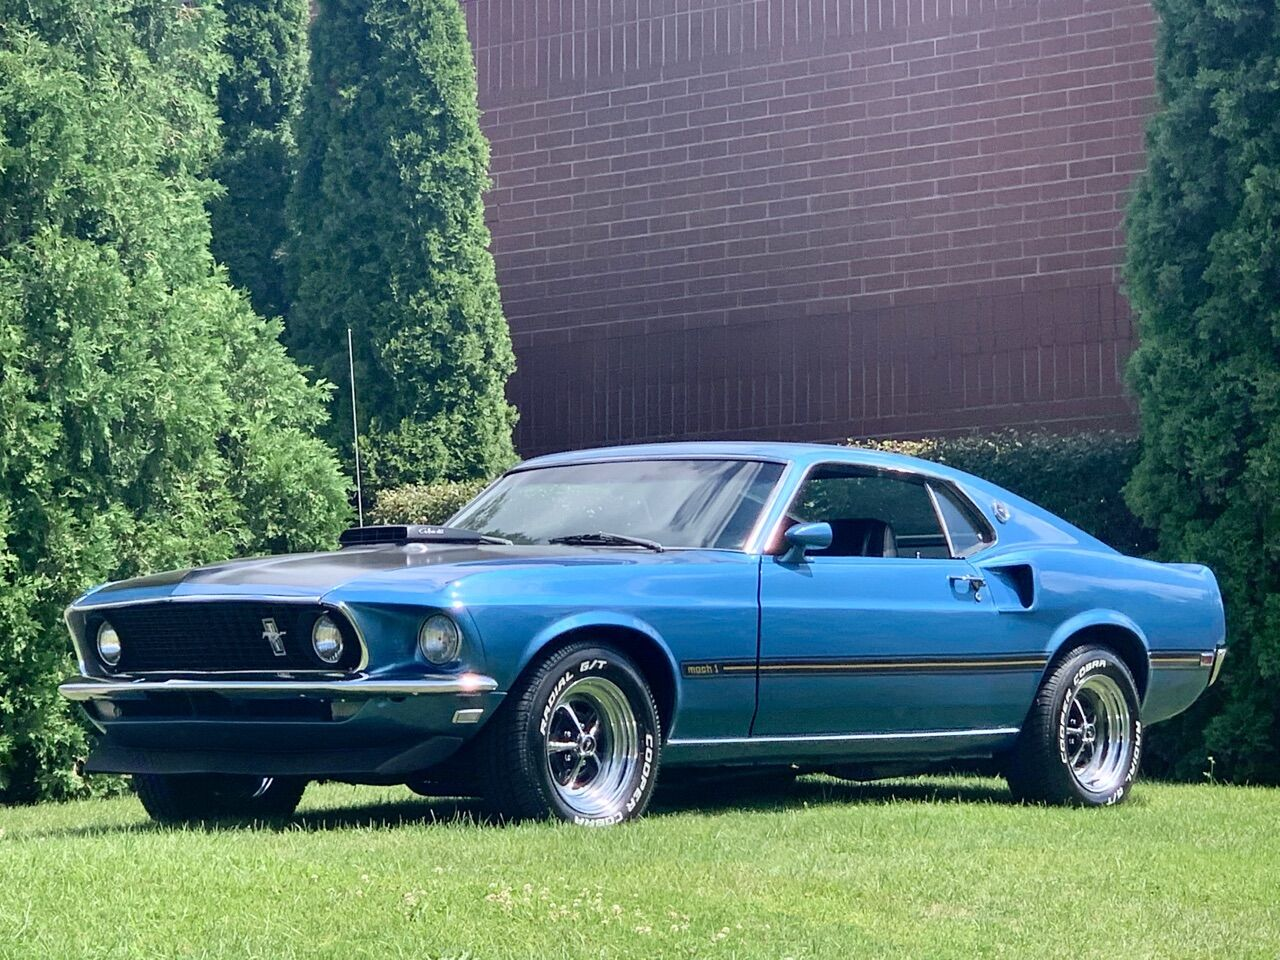 1st gen classic 1969 Ford Mustang Boss 302 4spd For Sale - MustangCarPlace